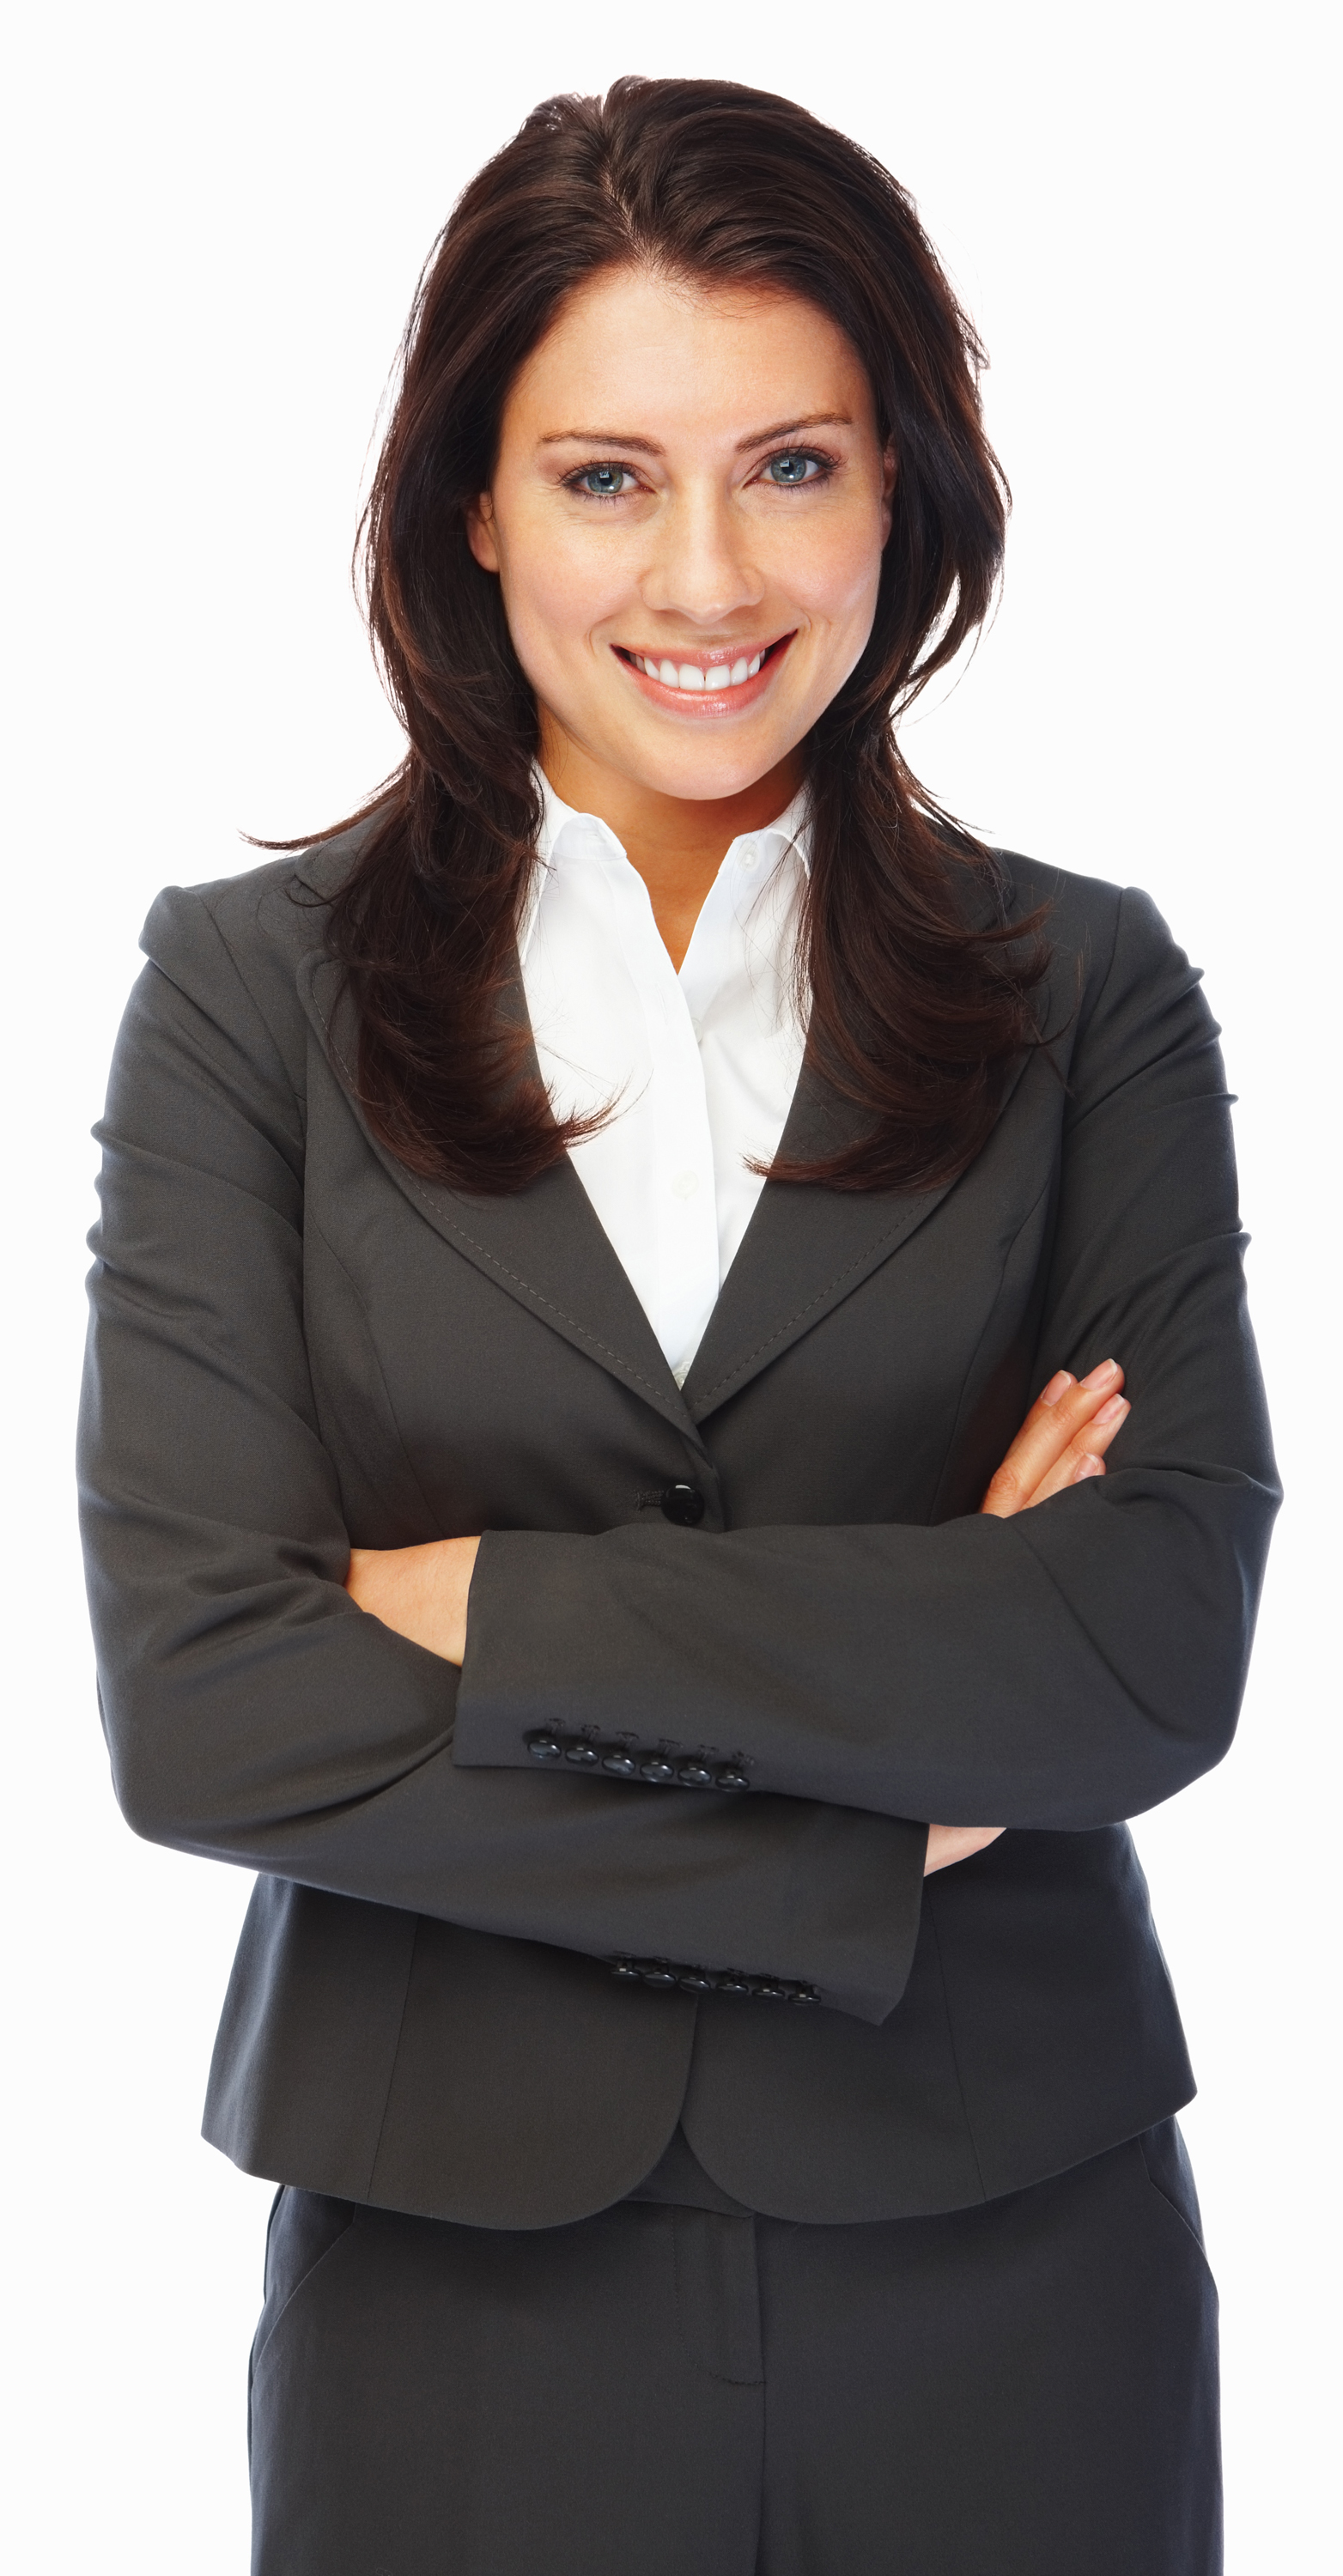 nude professional business women images